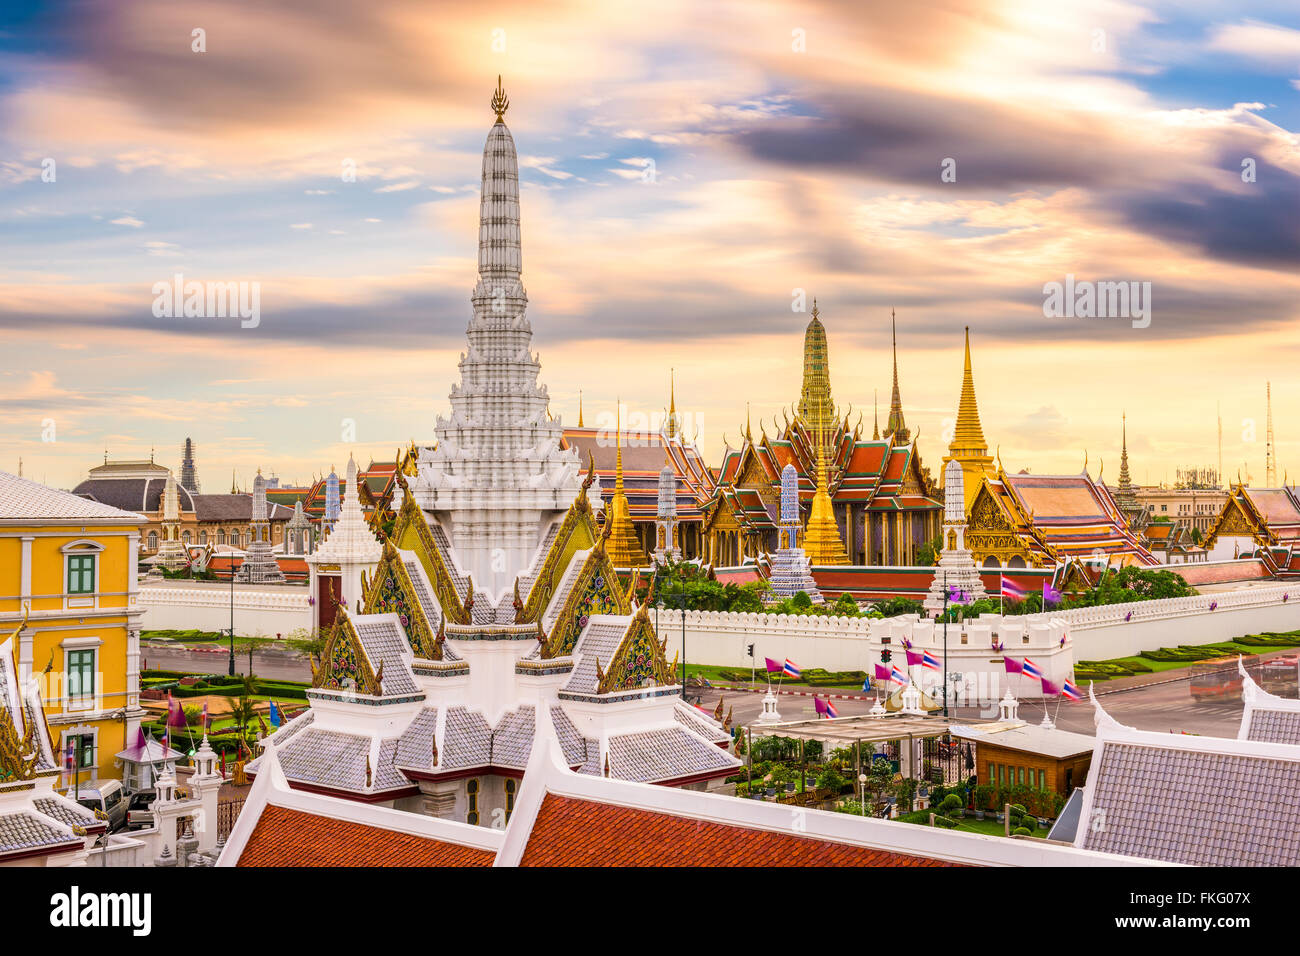 Bangkok, Thailand skyline at Temple of the Emerald Buddha and the Royal Palace. - Stock Image